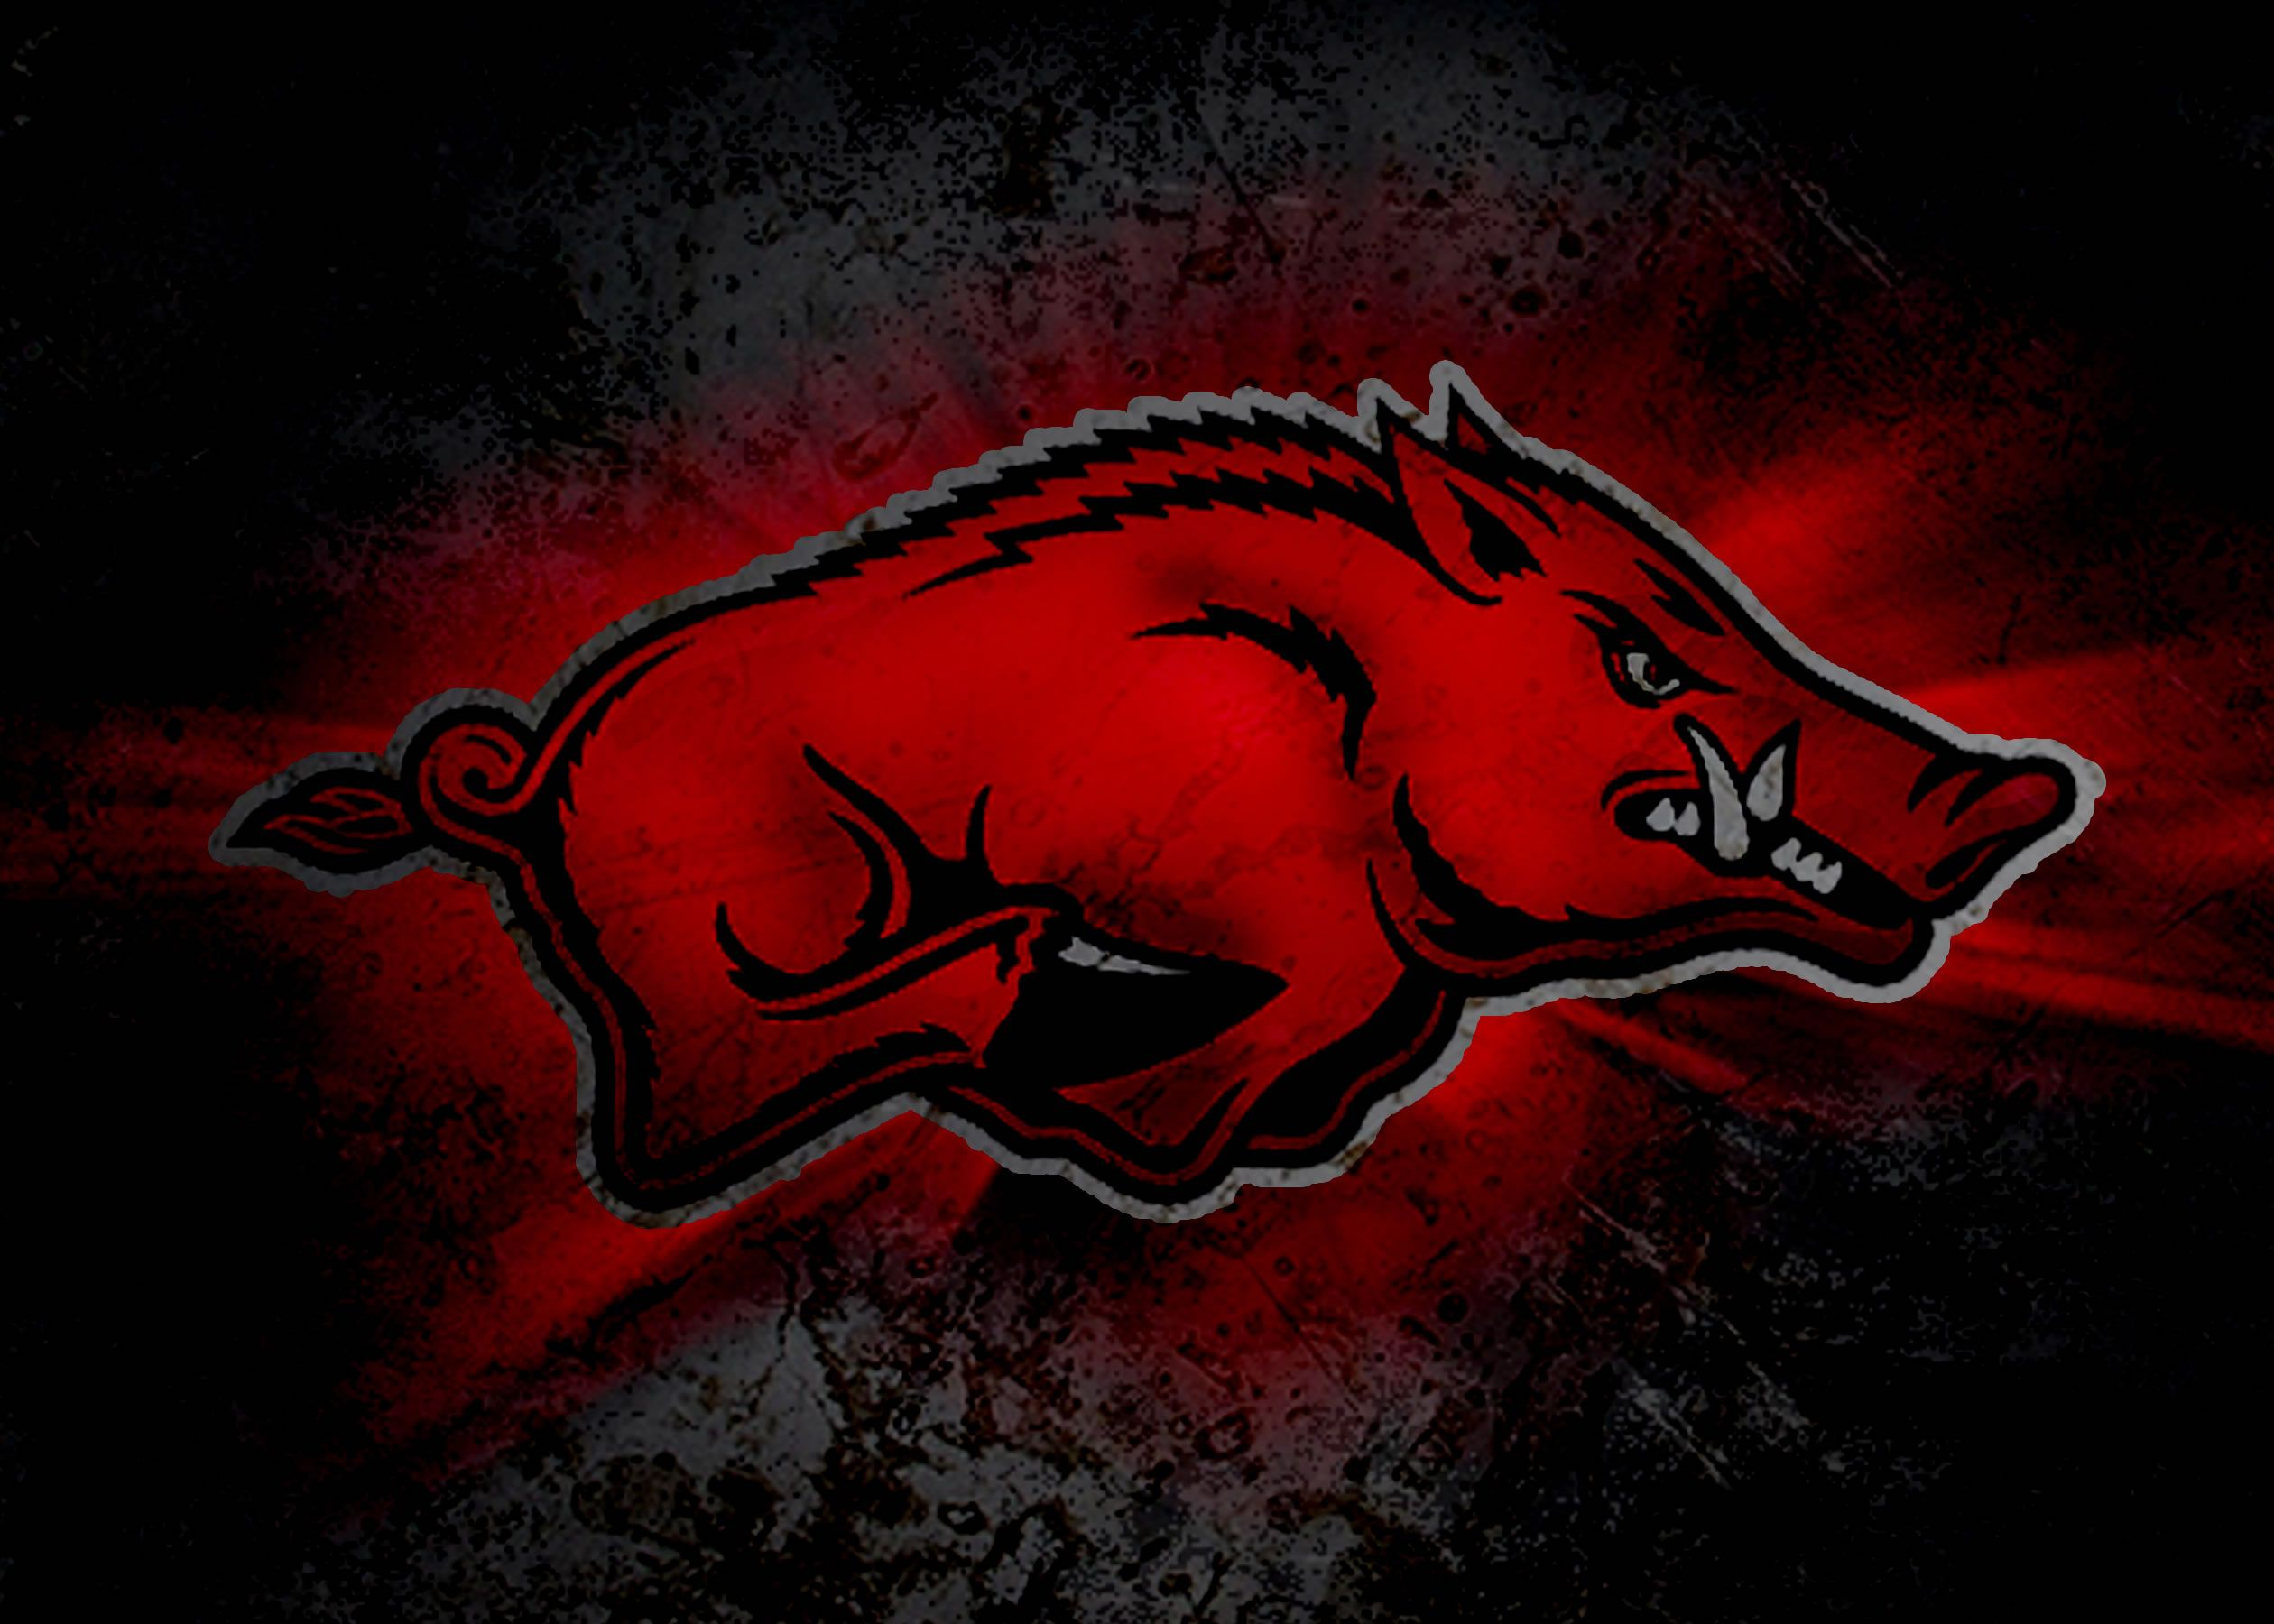 1280x1024 Razer Green Logo Hd Wallpaper 1920x1200edited Razer Logo Razorback Painting Arkansas Razorbacks Razorbacks